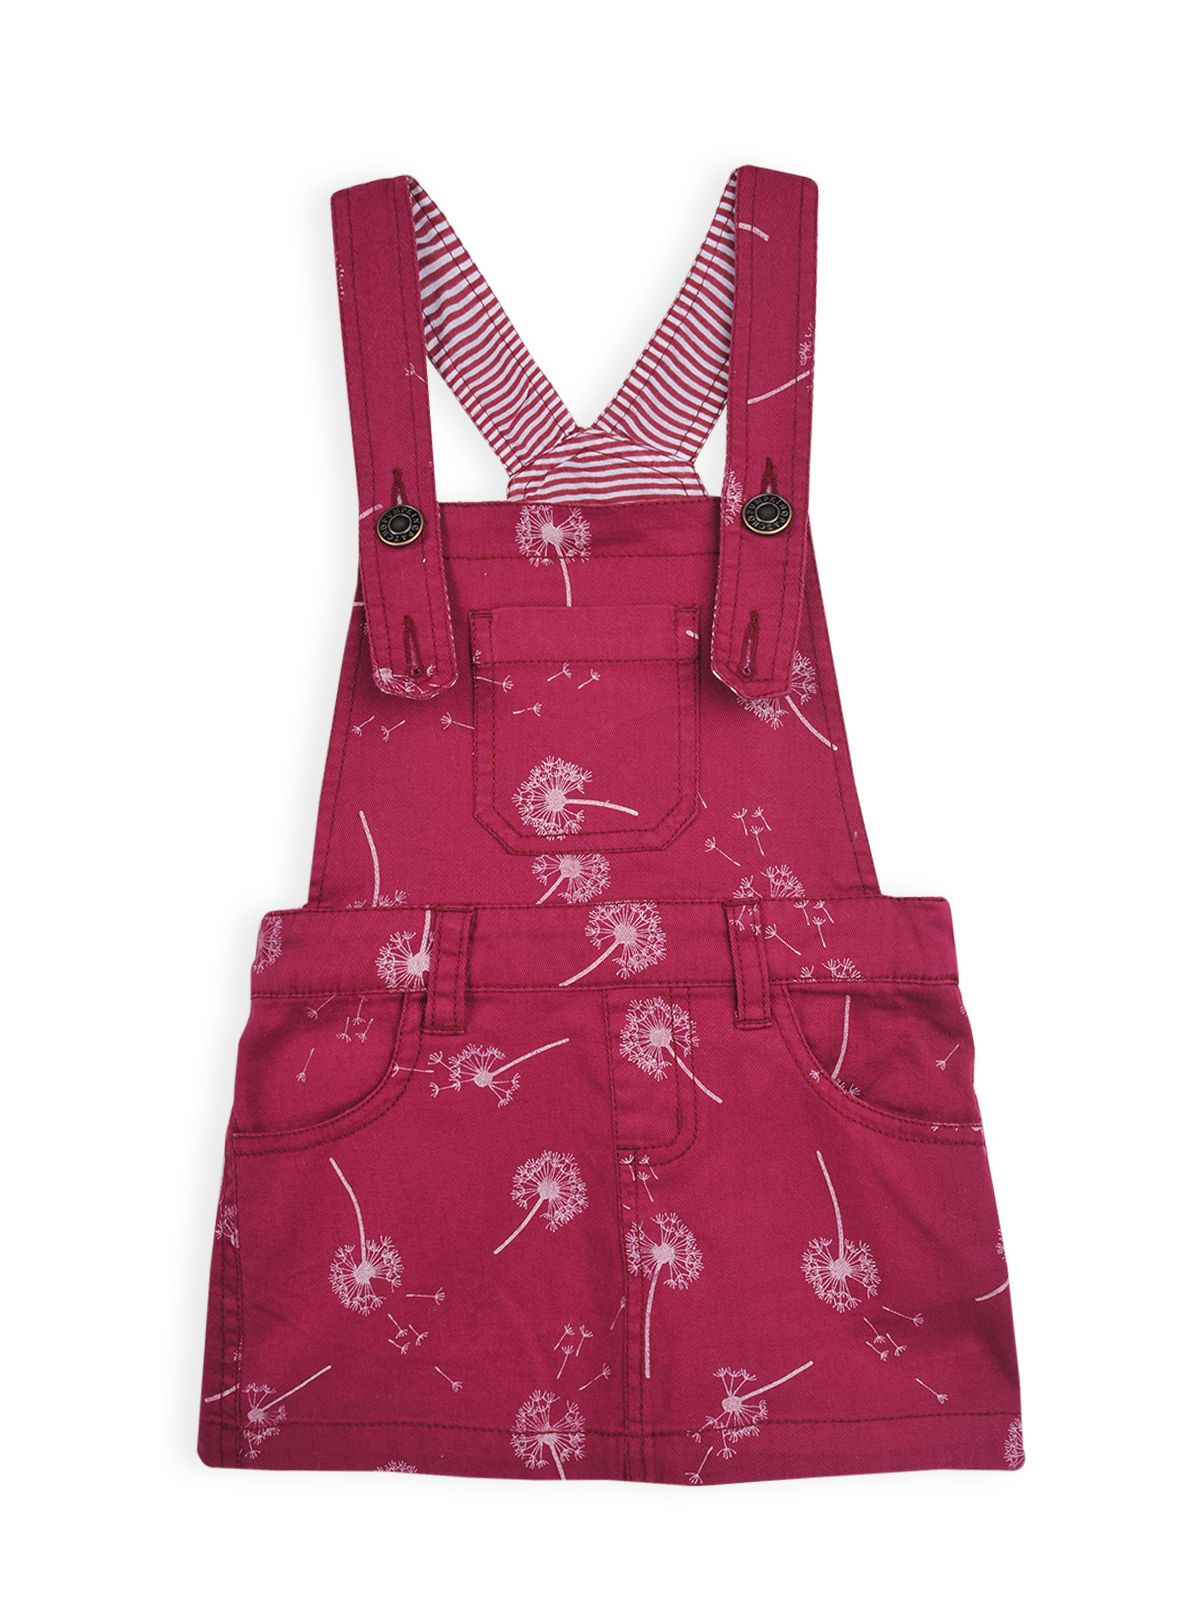 Girls dandelion seeds printed pinafore